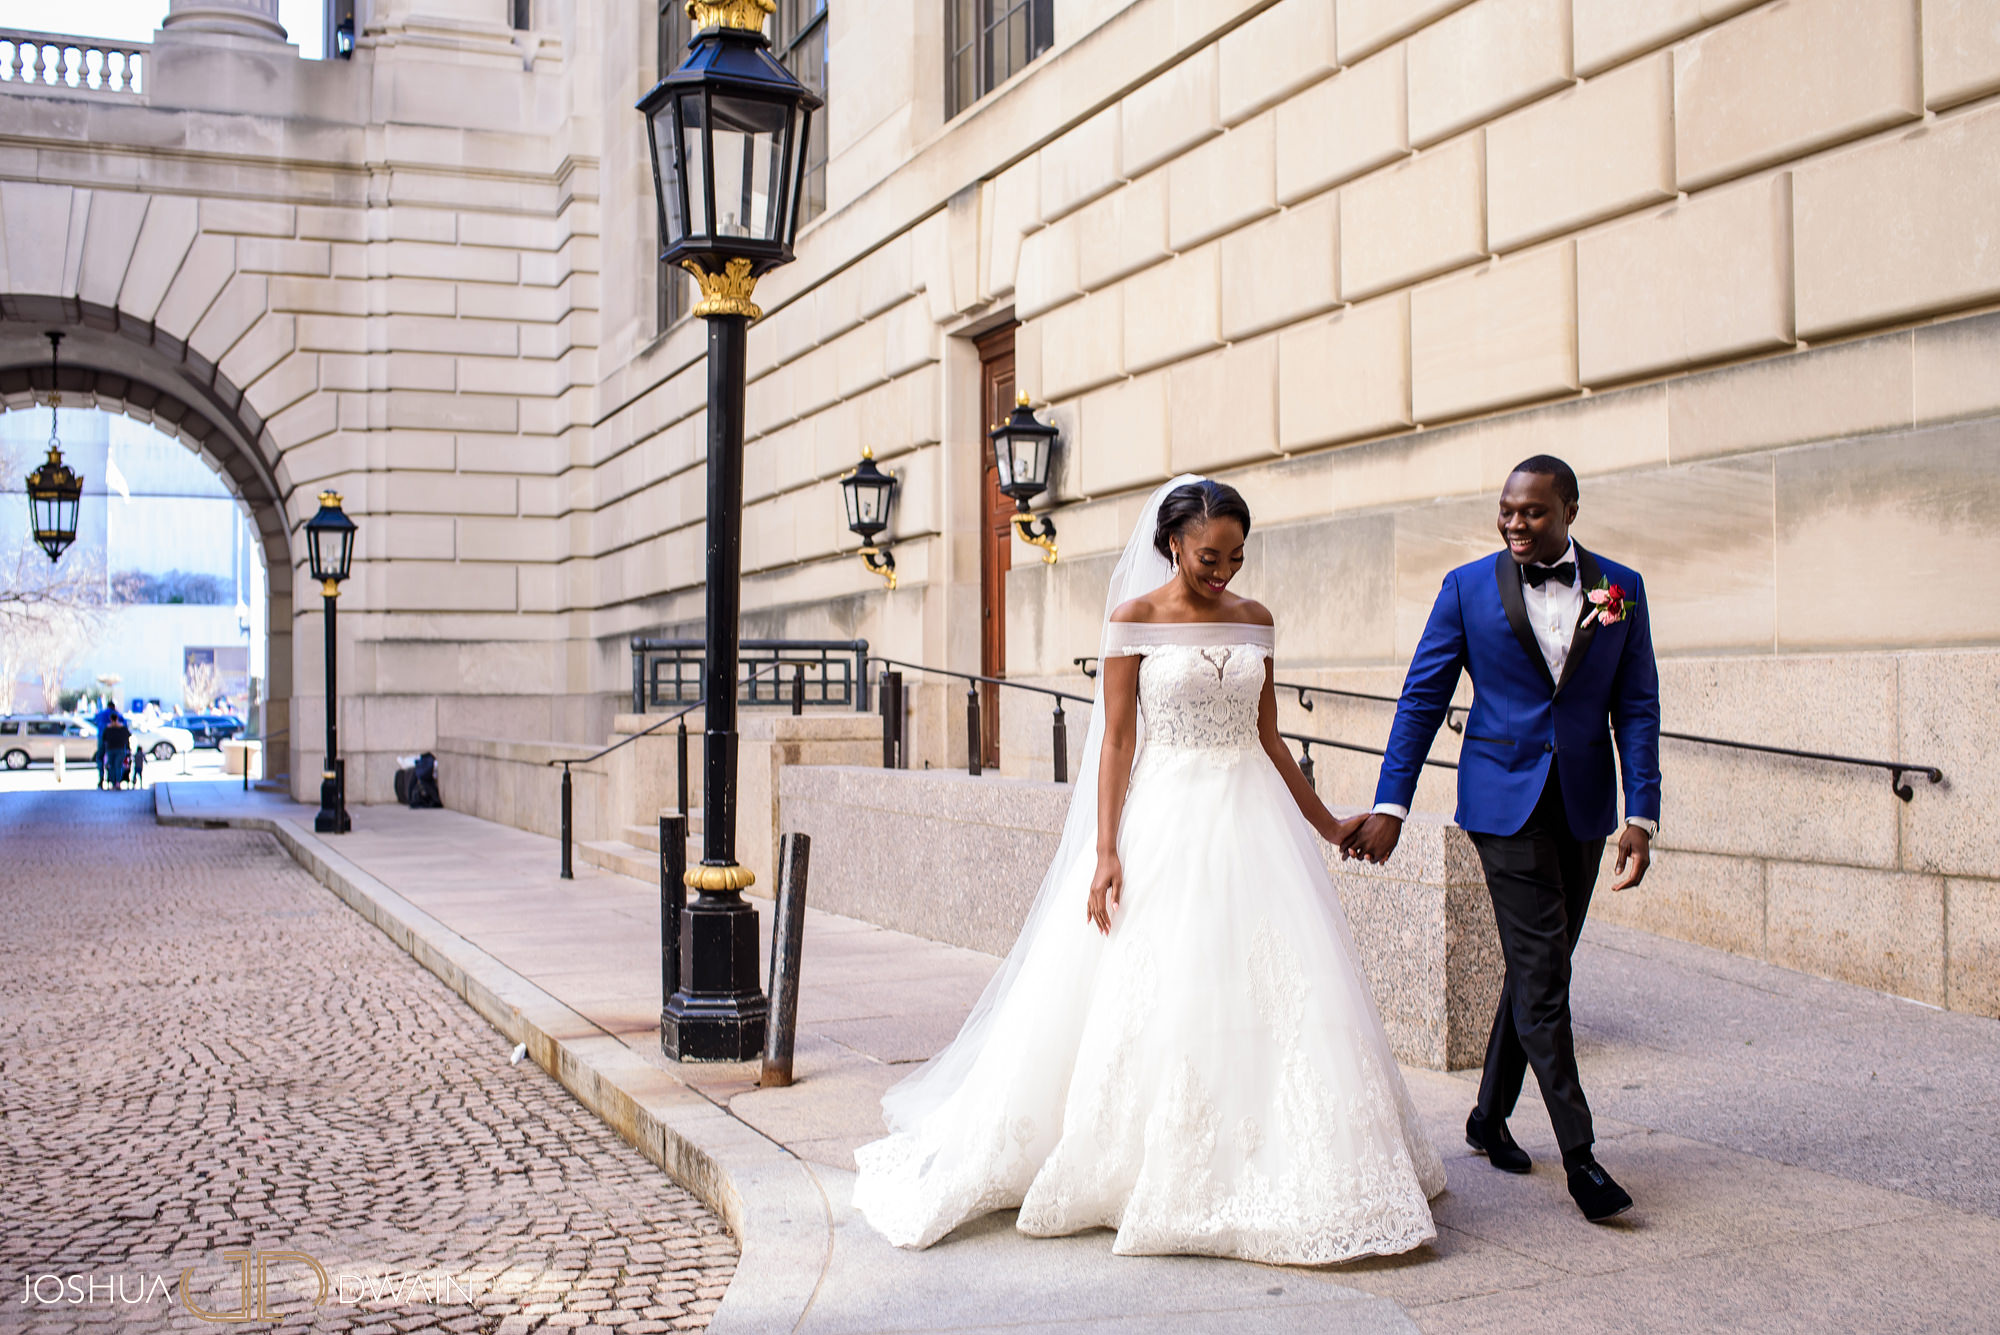 emerald-tolu--022-ronald-reagan-building-trade-center-best-washington-dc--wedding-photographer-joshua-dwain